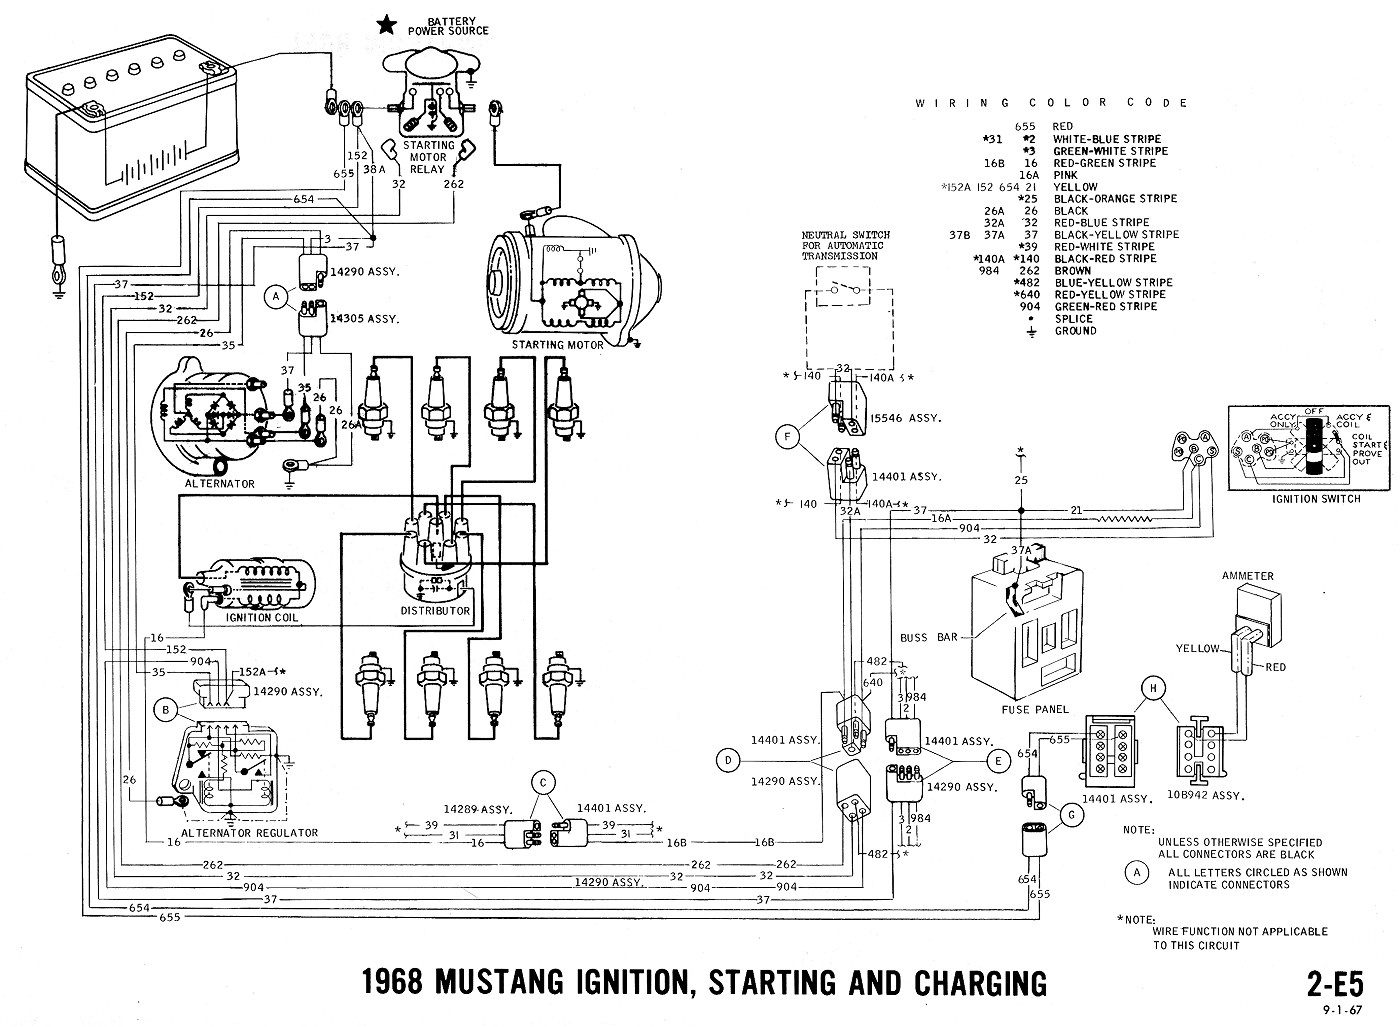 General Engine Wiring Diagram 1968 Mustang Diagrams Evolving Software Charging Starting